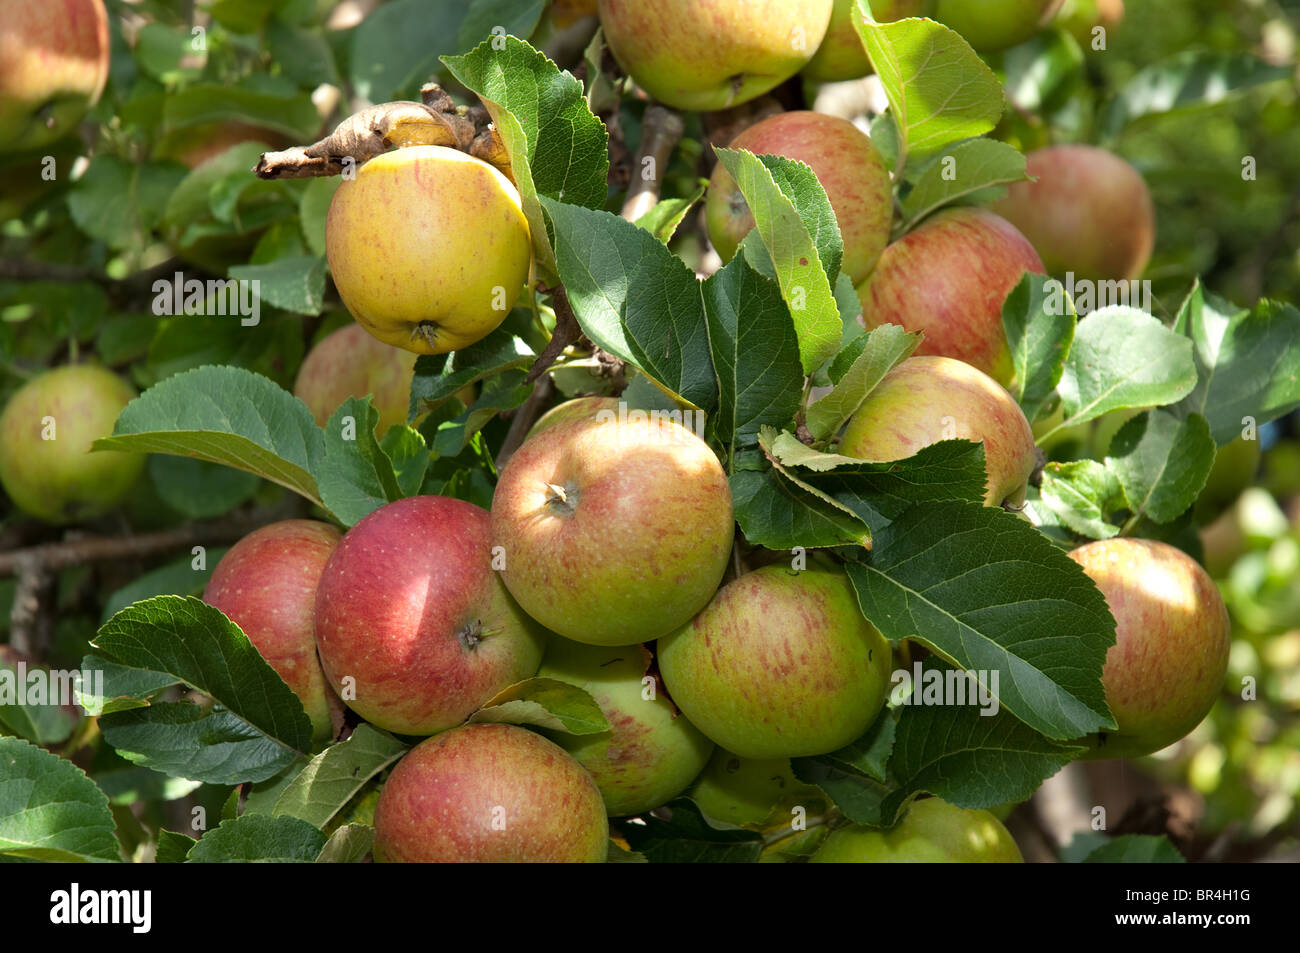 Apples on tree in a garden in England. - Stock Image